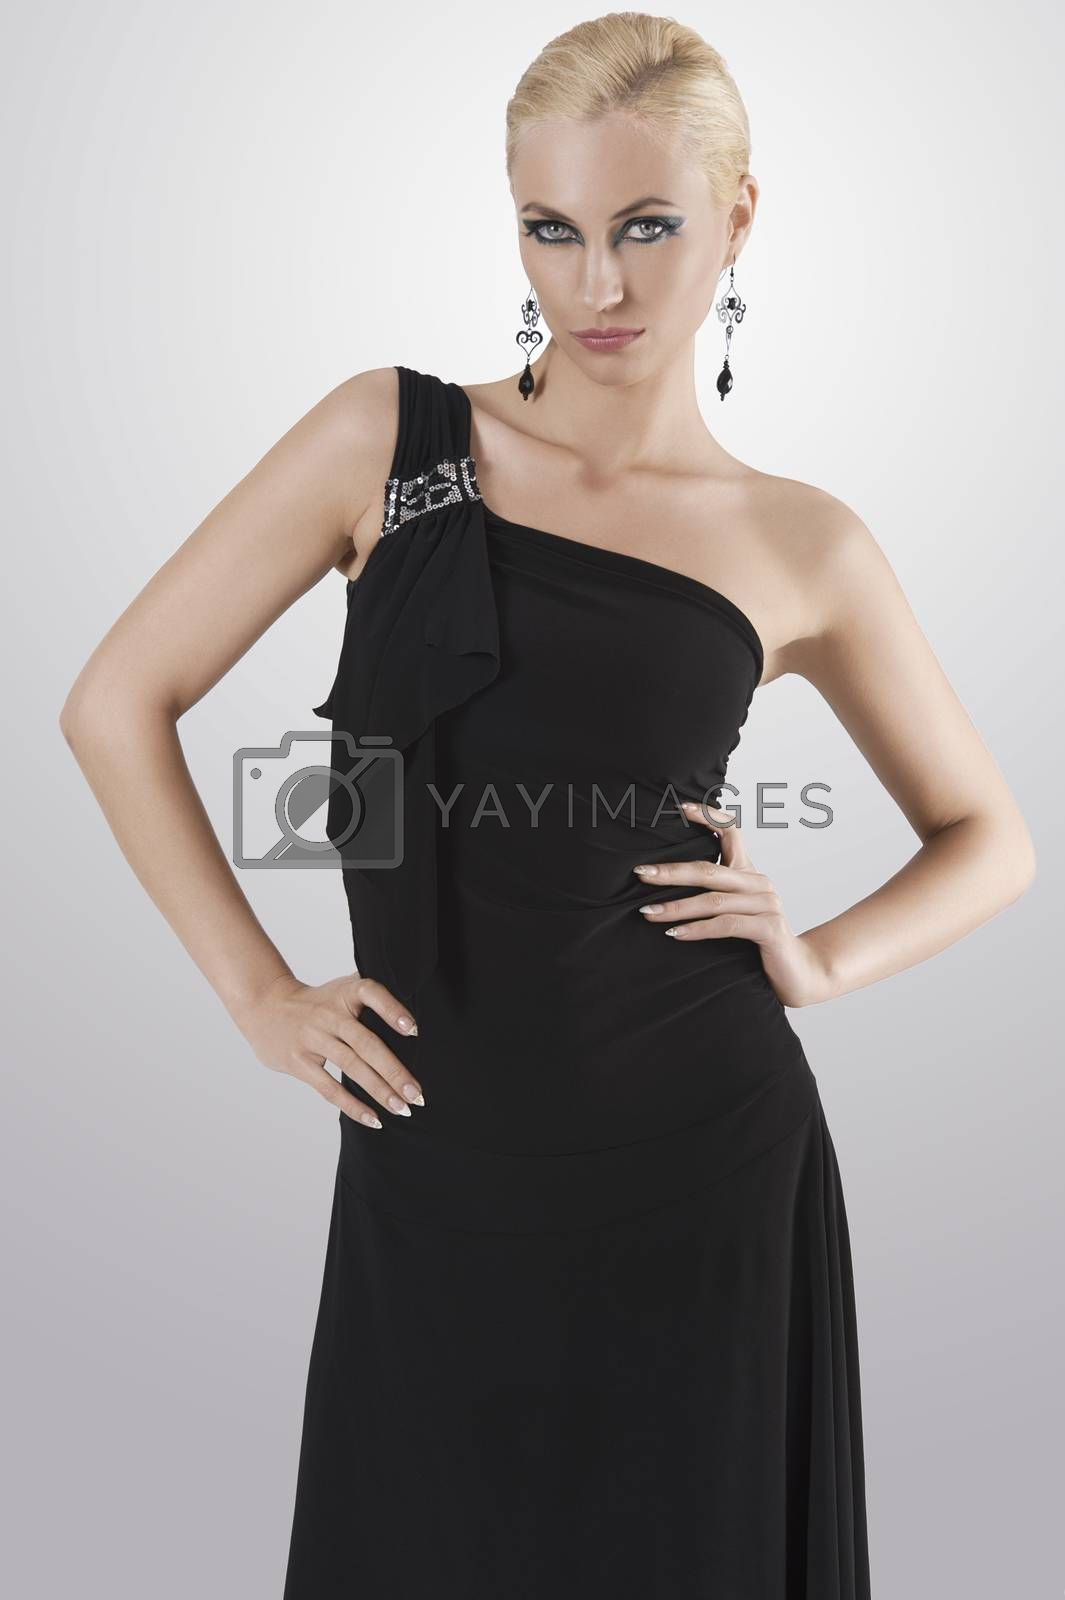 Royalty free image of blond girl in black dress posing towards the camera by fotoCD